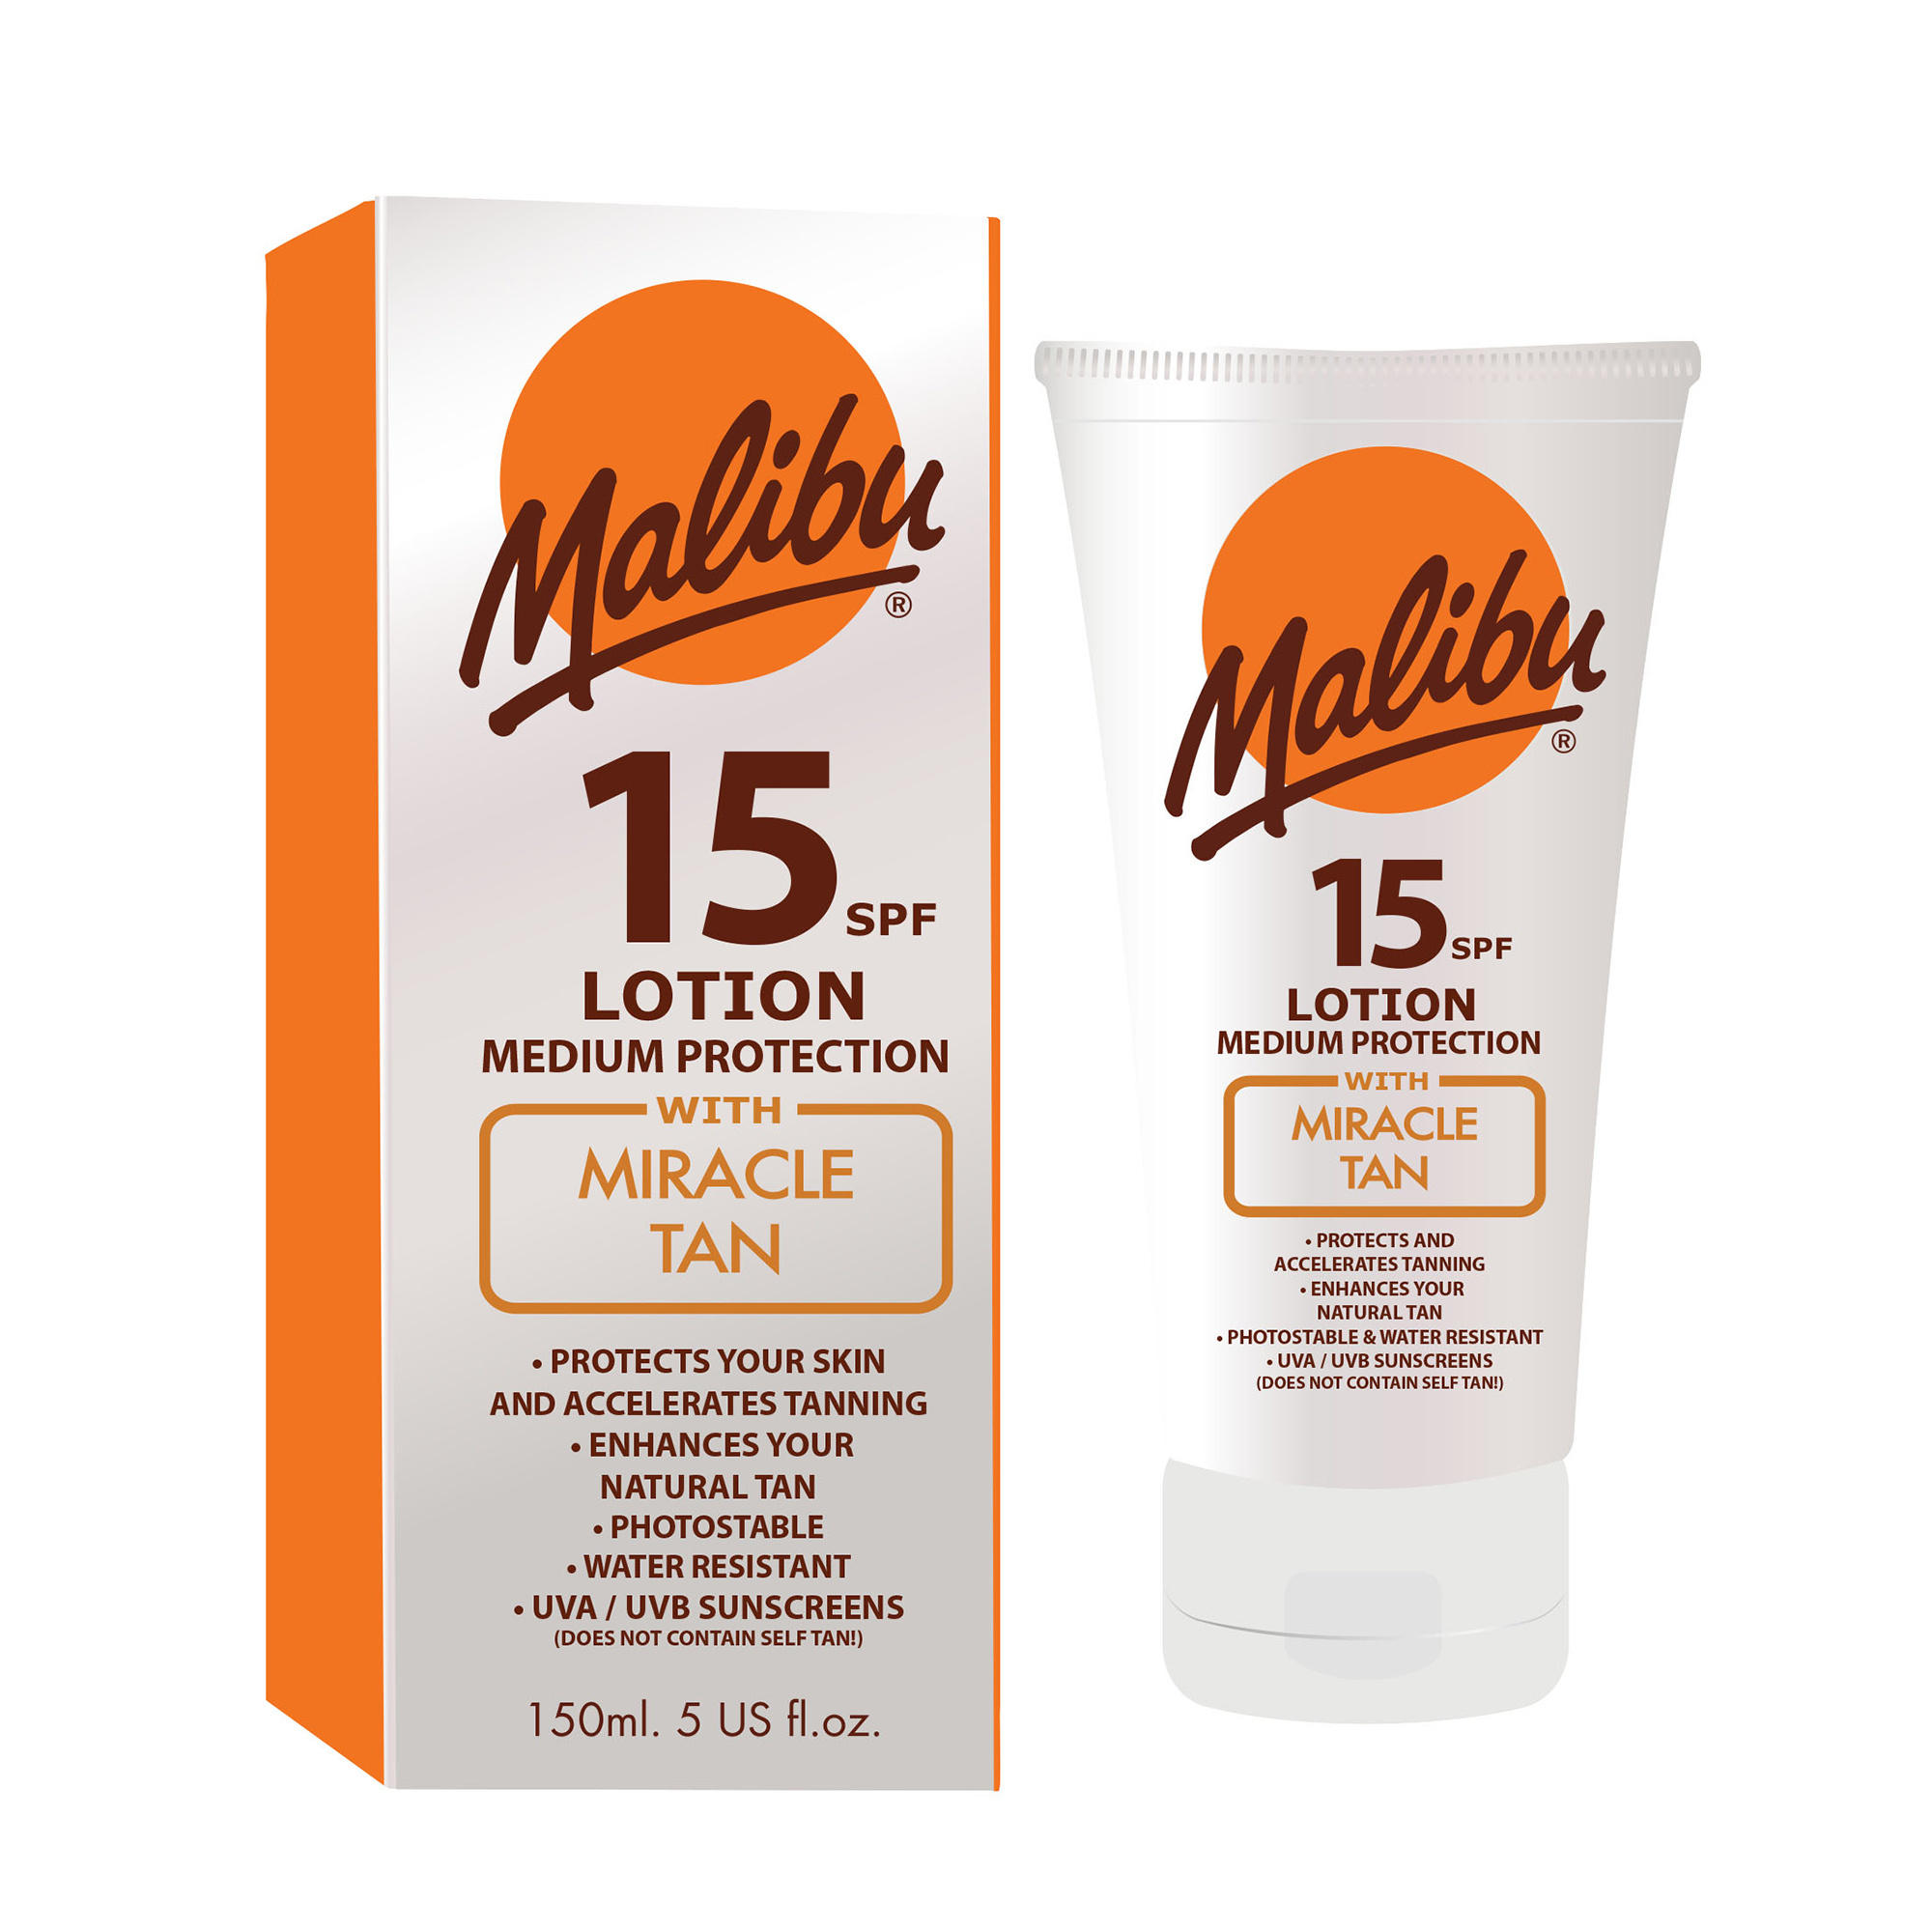 Malibu Lotion with Miracle Tan SPF15